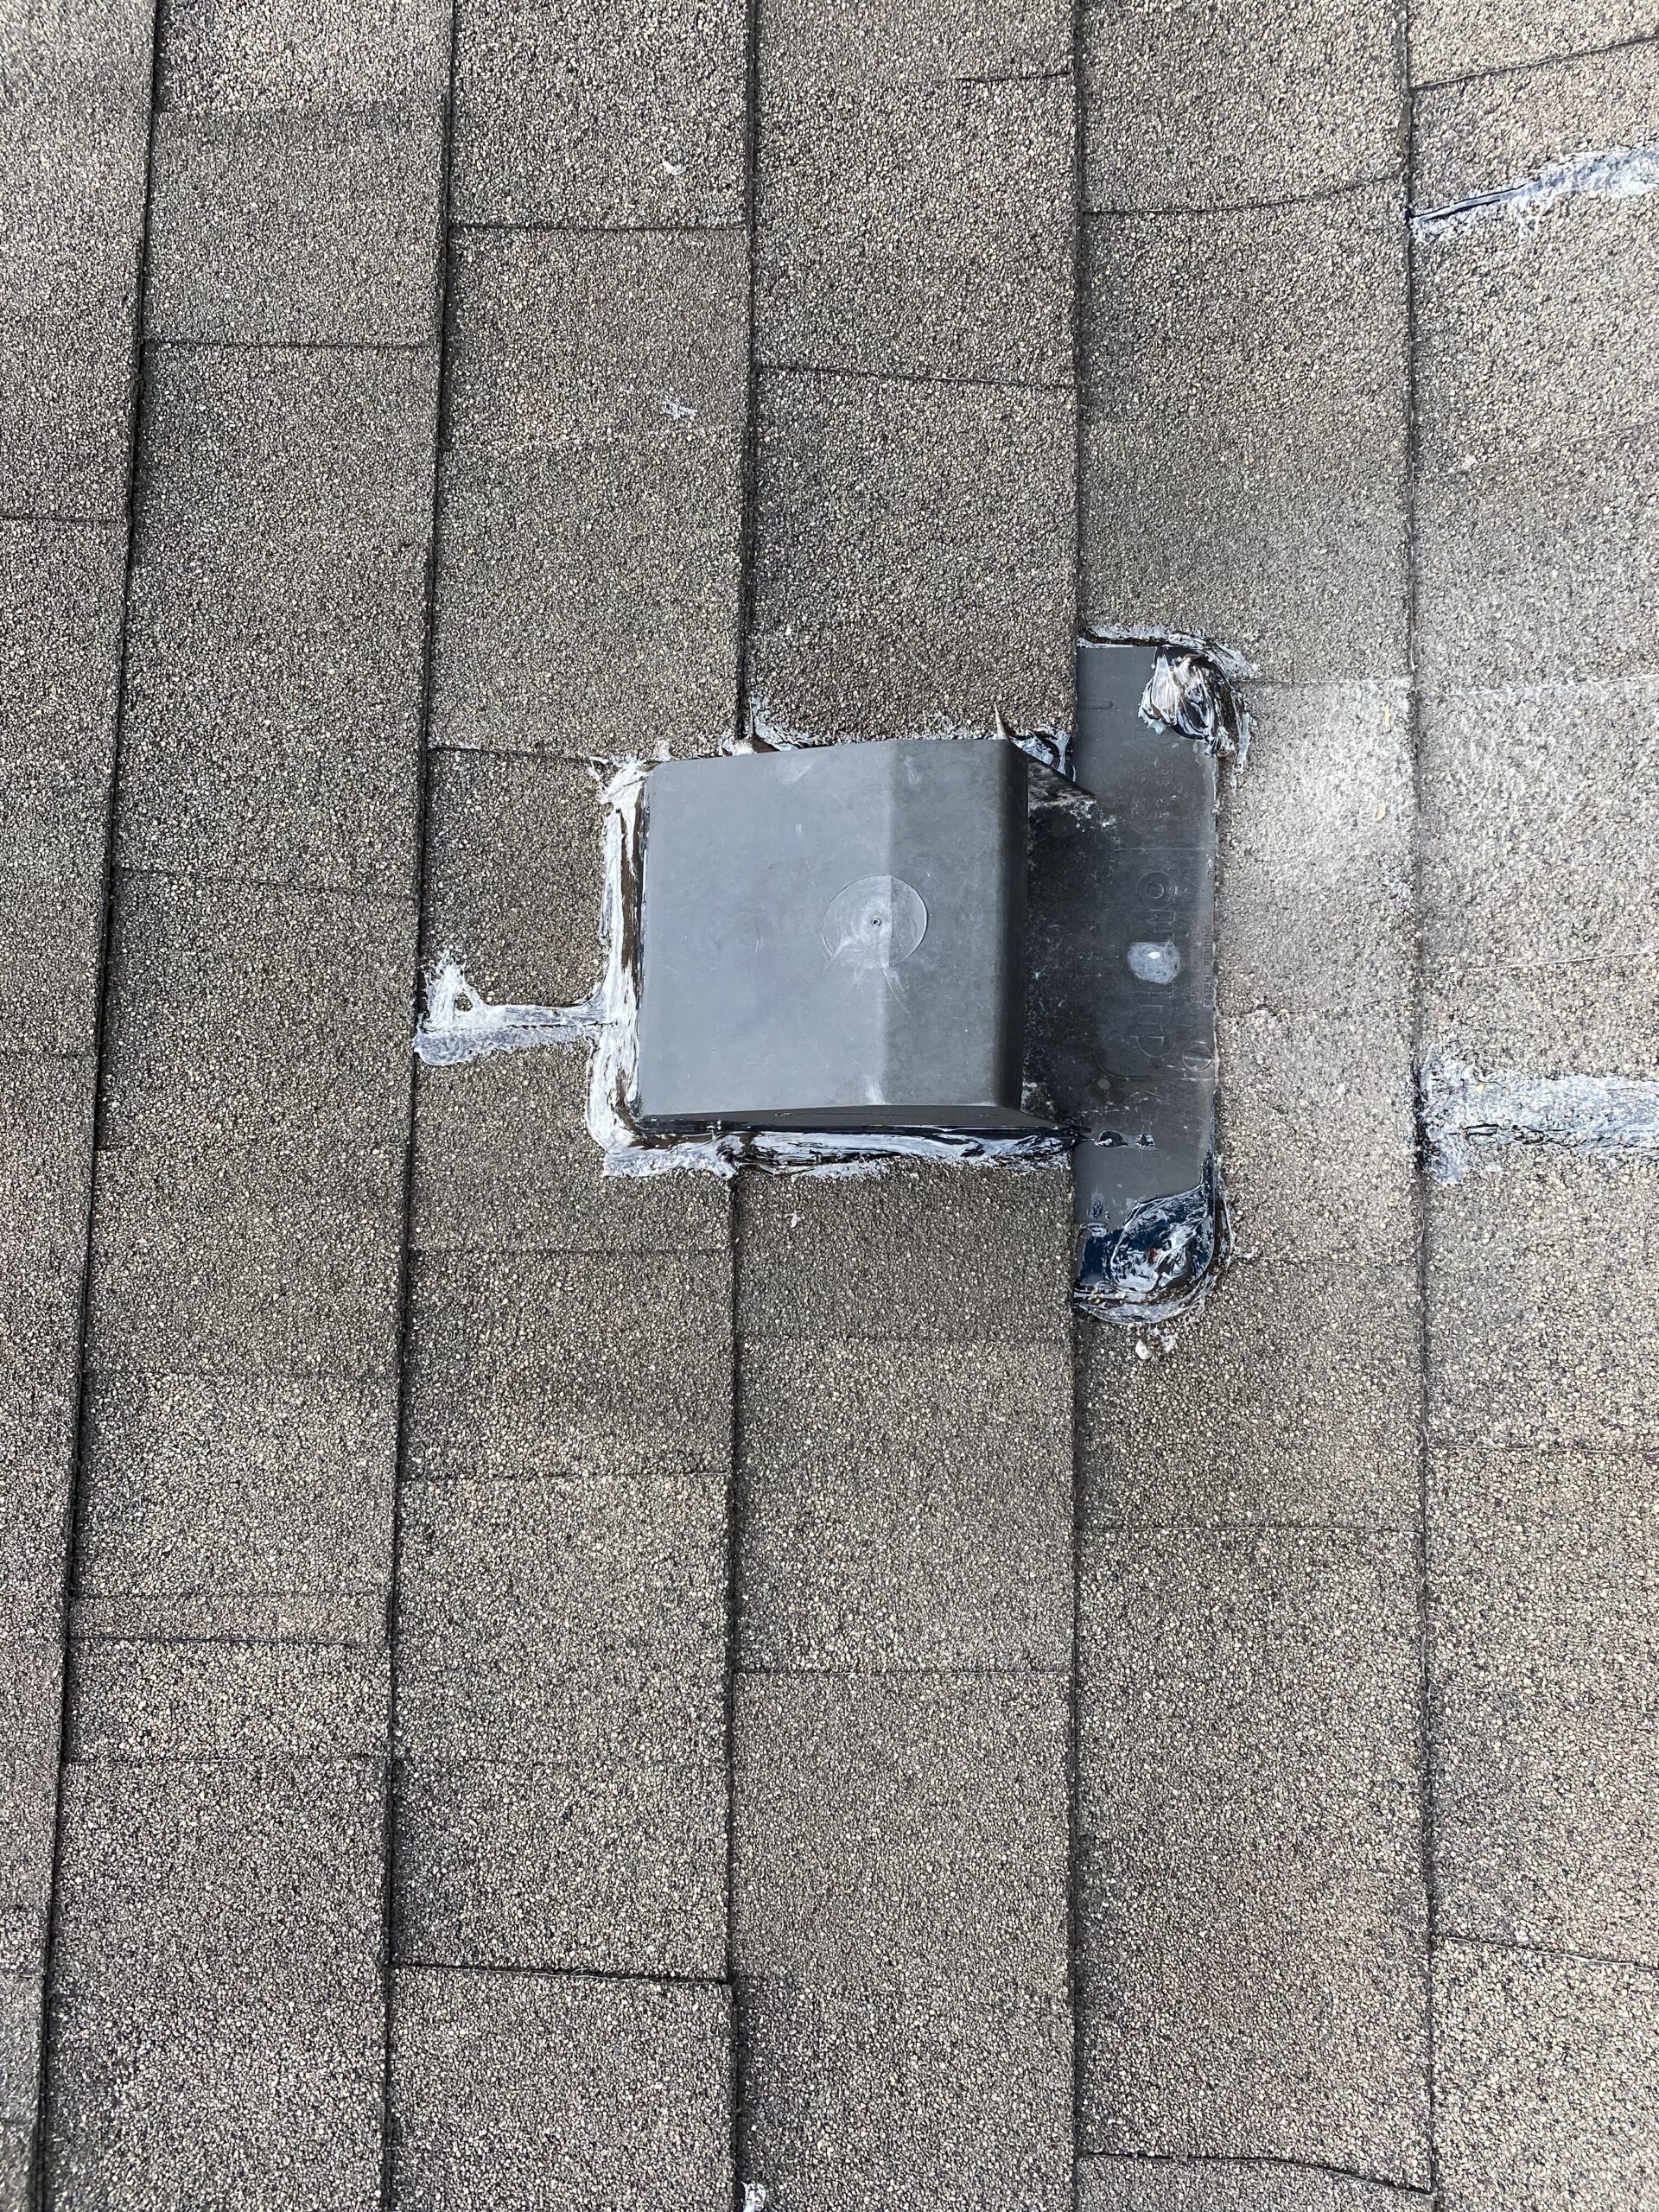 This is a picture of a black exhaust vent that has been sealed with clear caulk